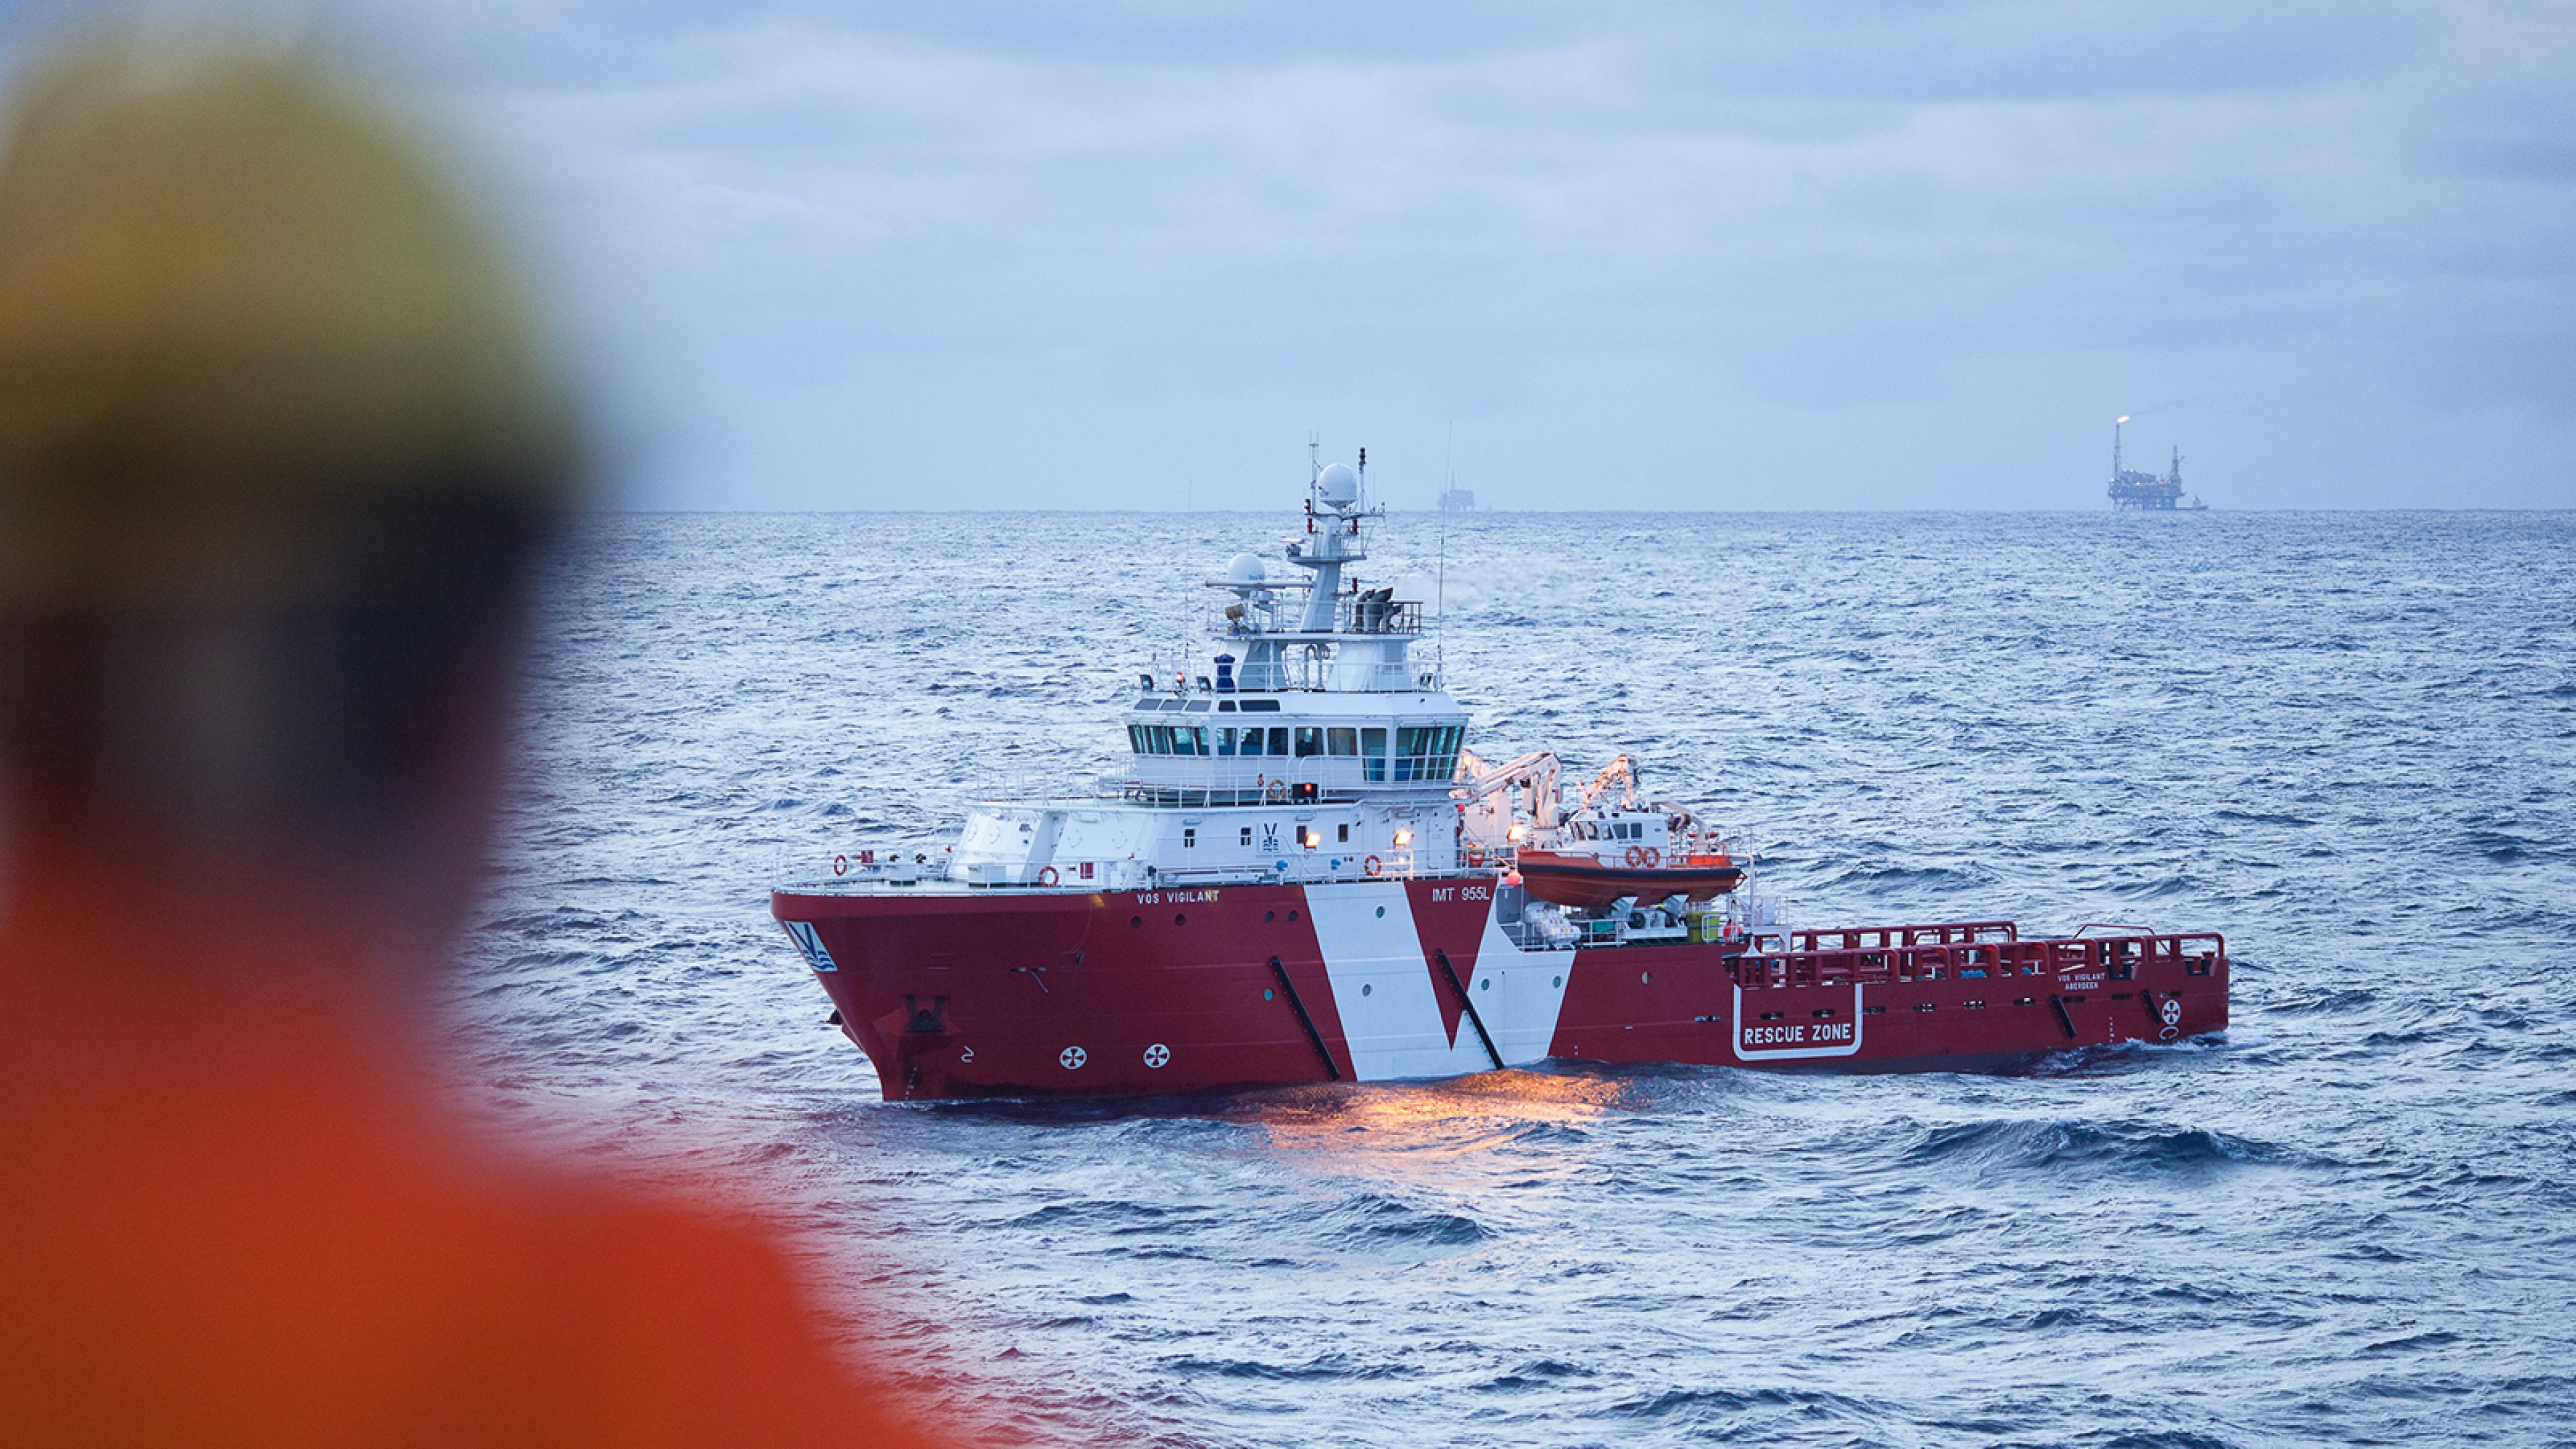 A rescue vessel at sea